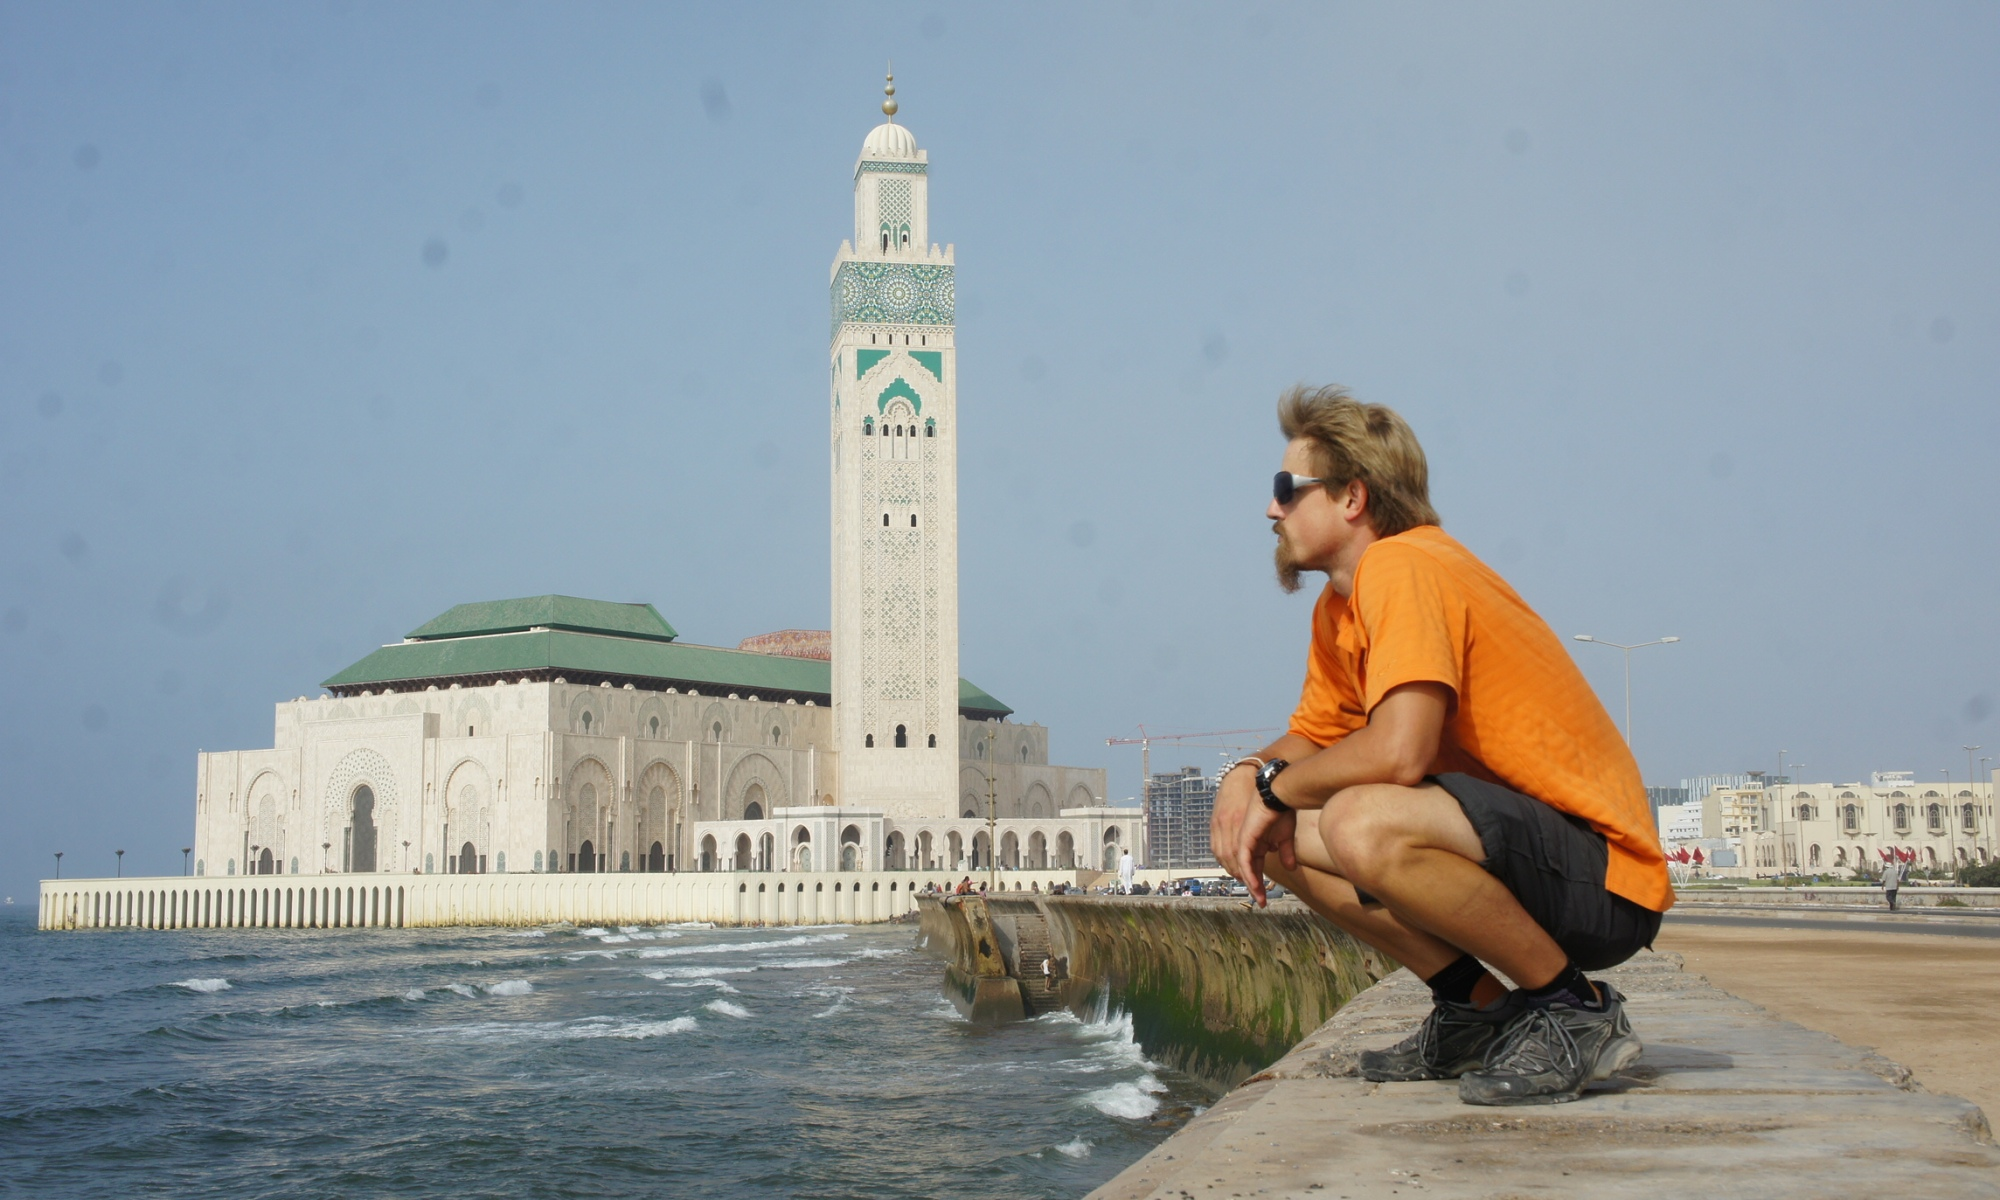 Chris in Casablanca